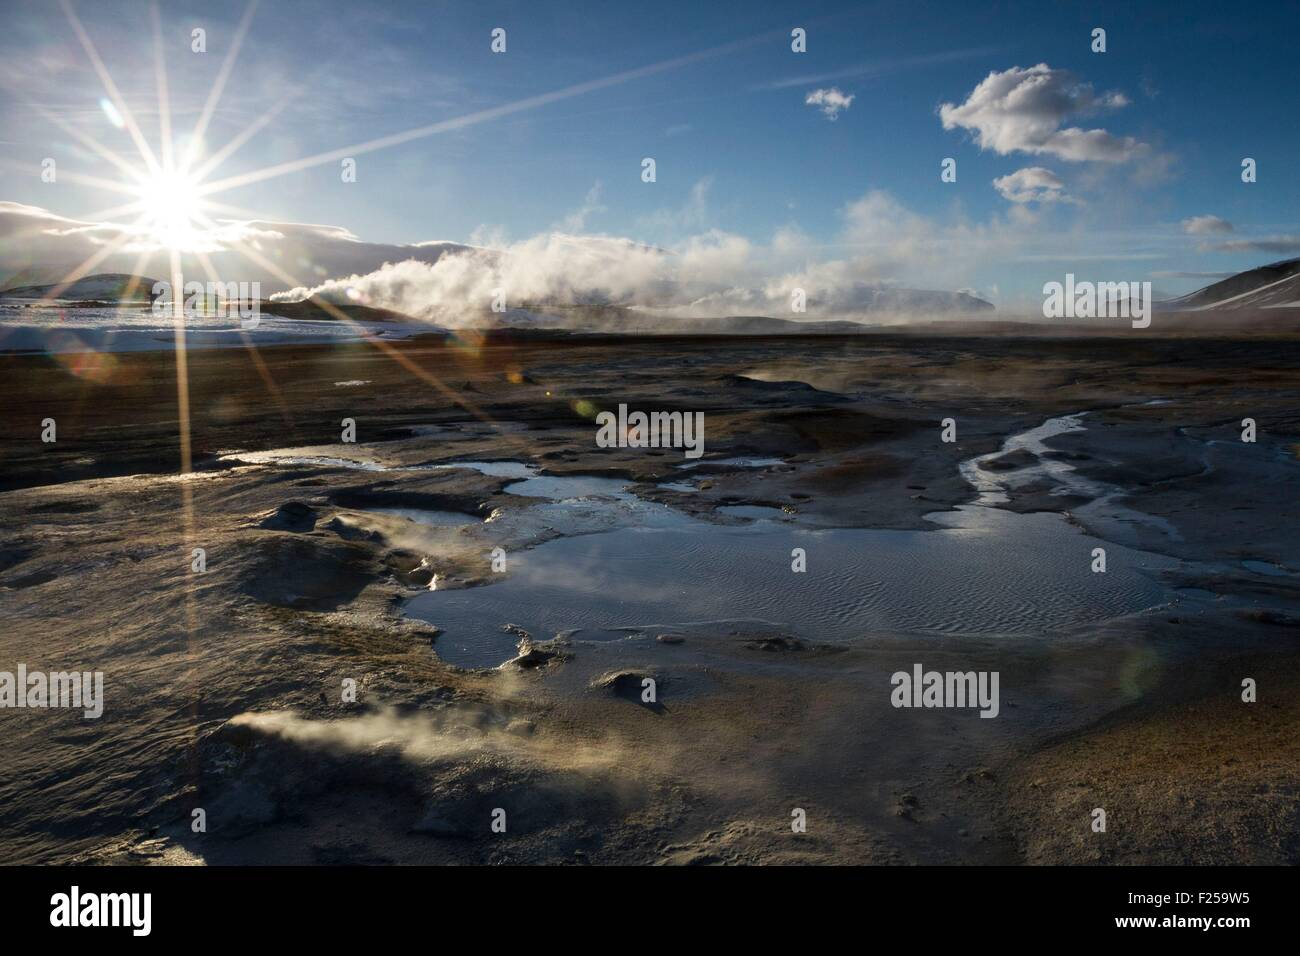 Iceland, Northeast, Namafjall mountain, Hot spring and steam field Hverir, hotspot and geological fault - Stock Image